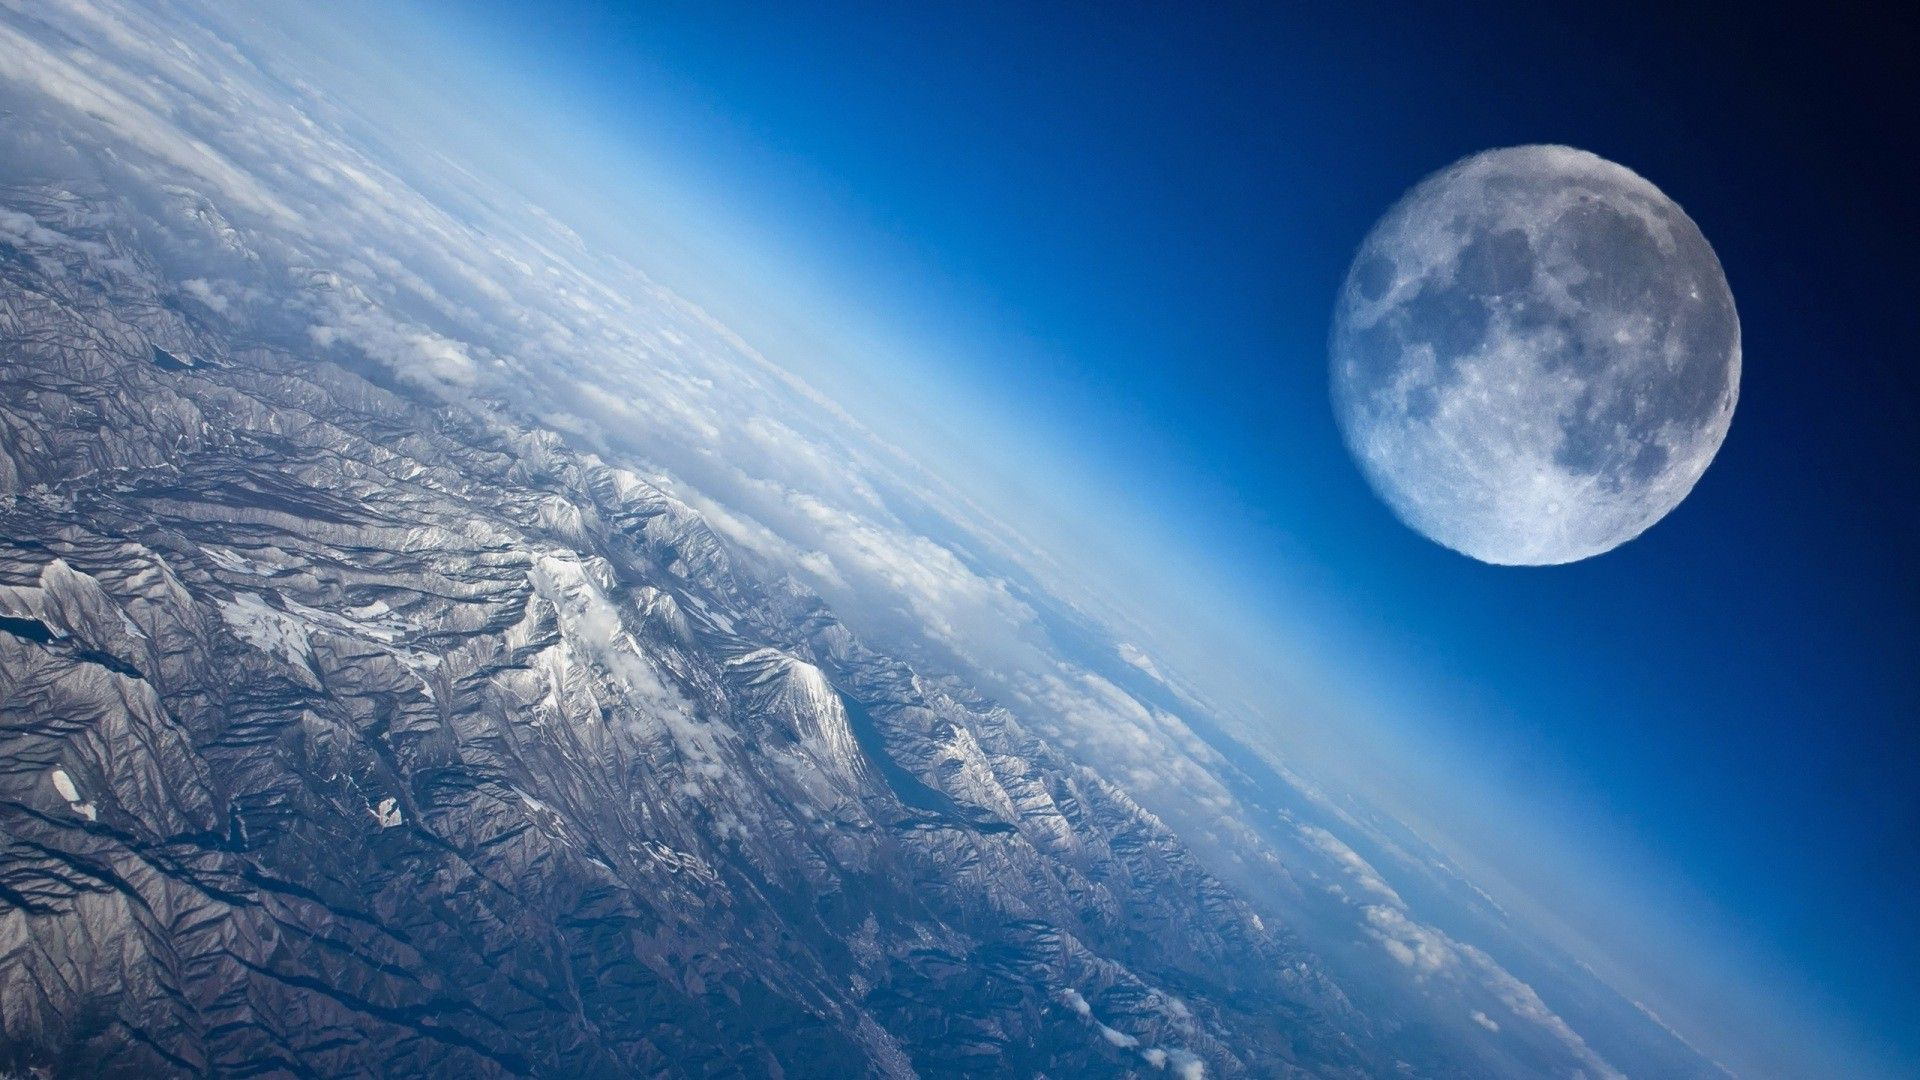 Good Wallpaper Mountain Space - moon-over-the-mountains-space-hd-wallpaper-1920x1080-7181  You Should Have_622577.jpg